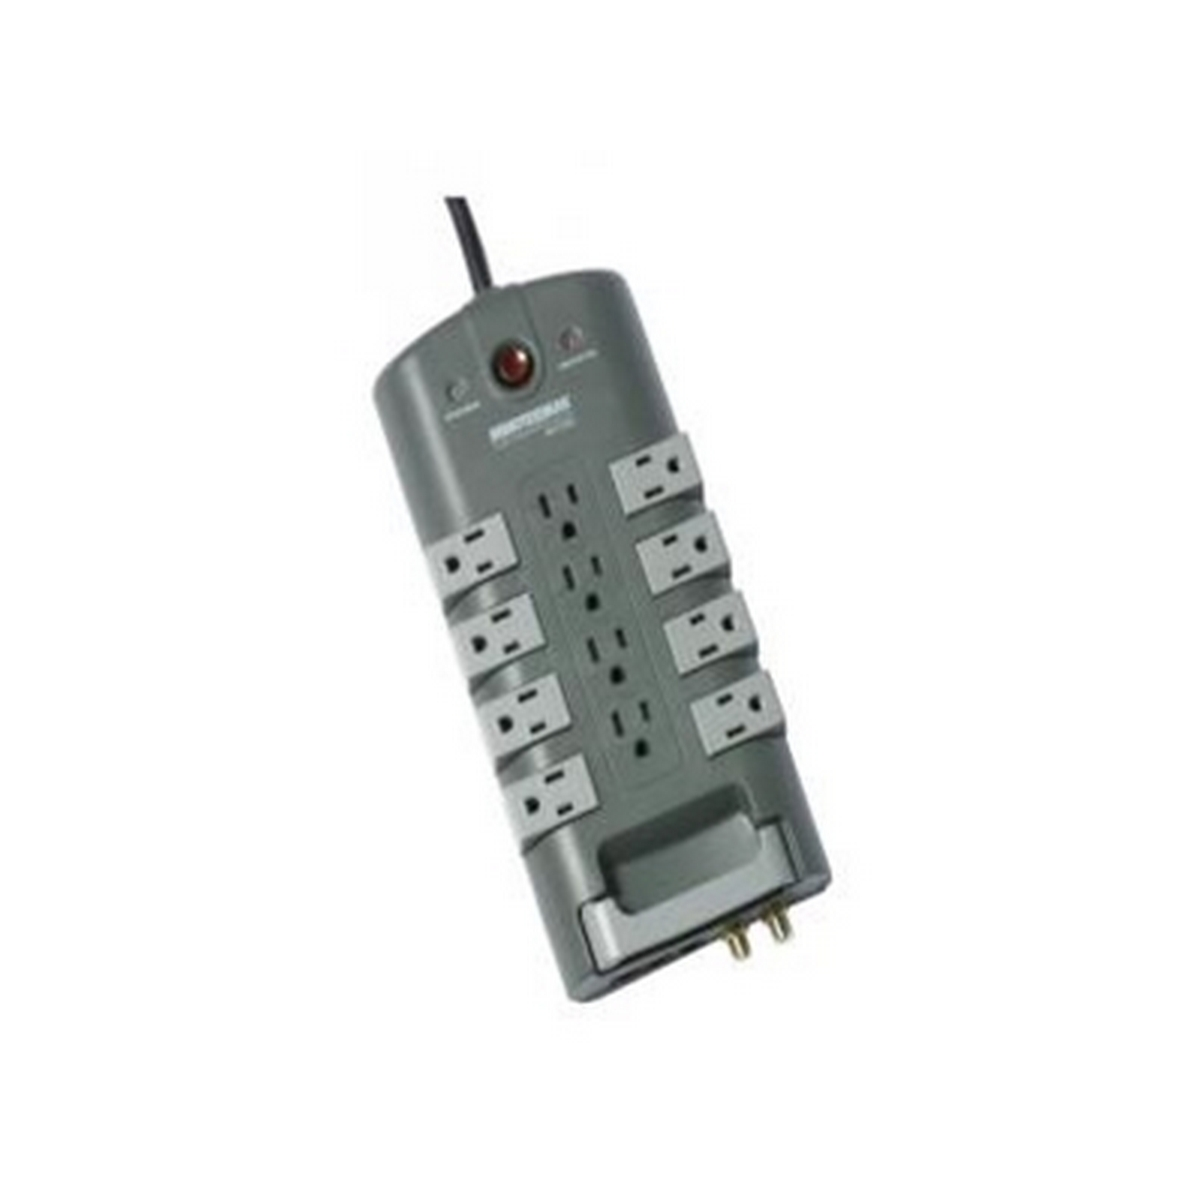 8-rotating outlets, coax/phone/LAN prot., 4320J